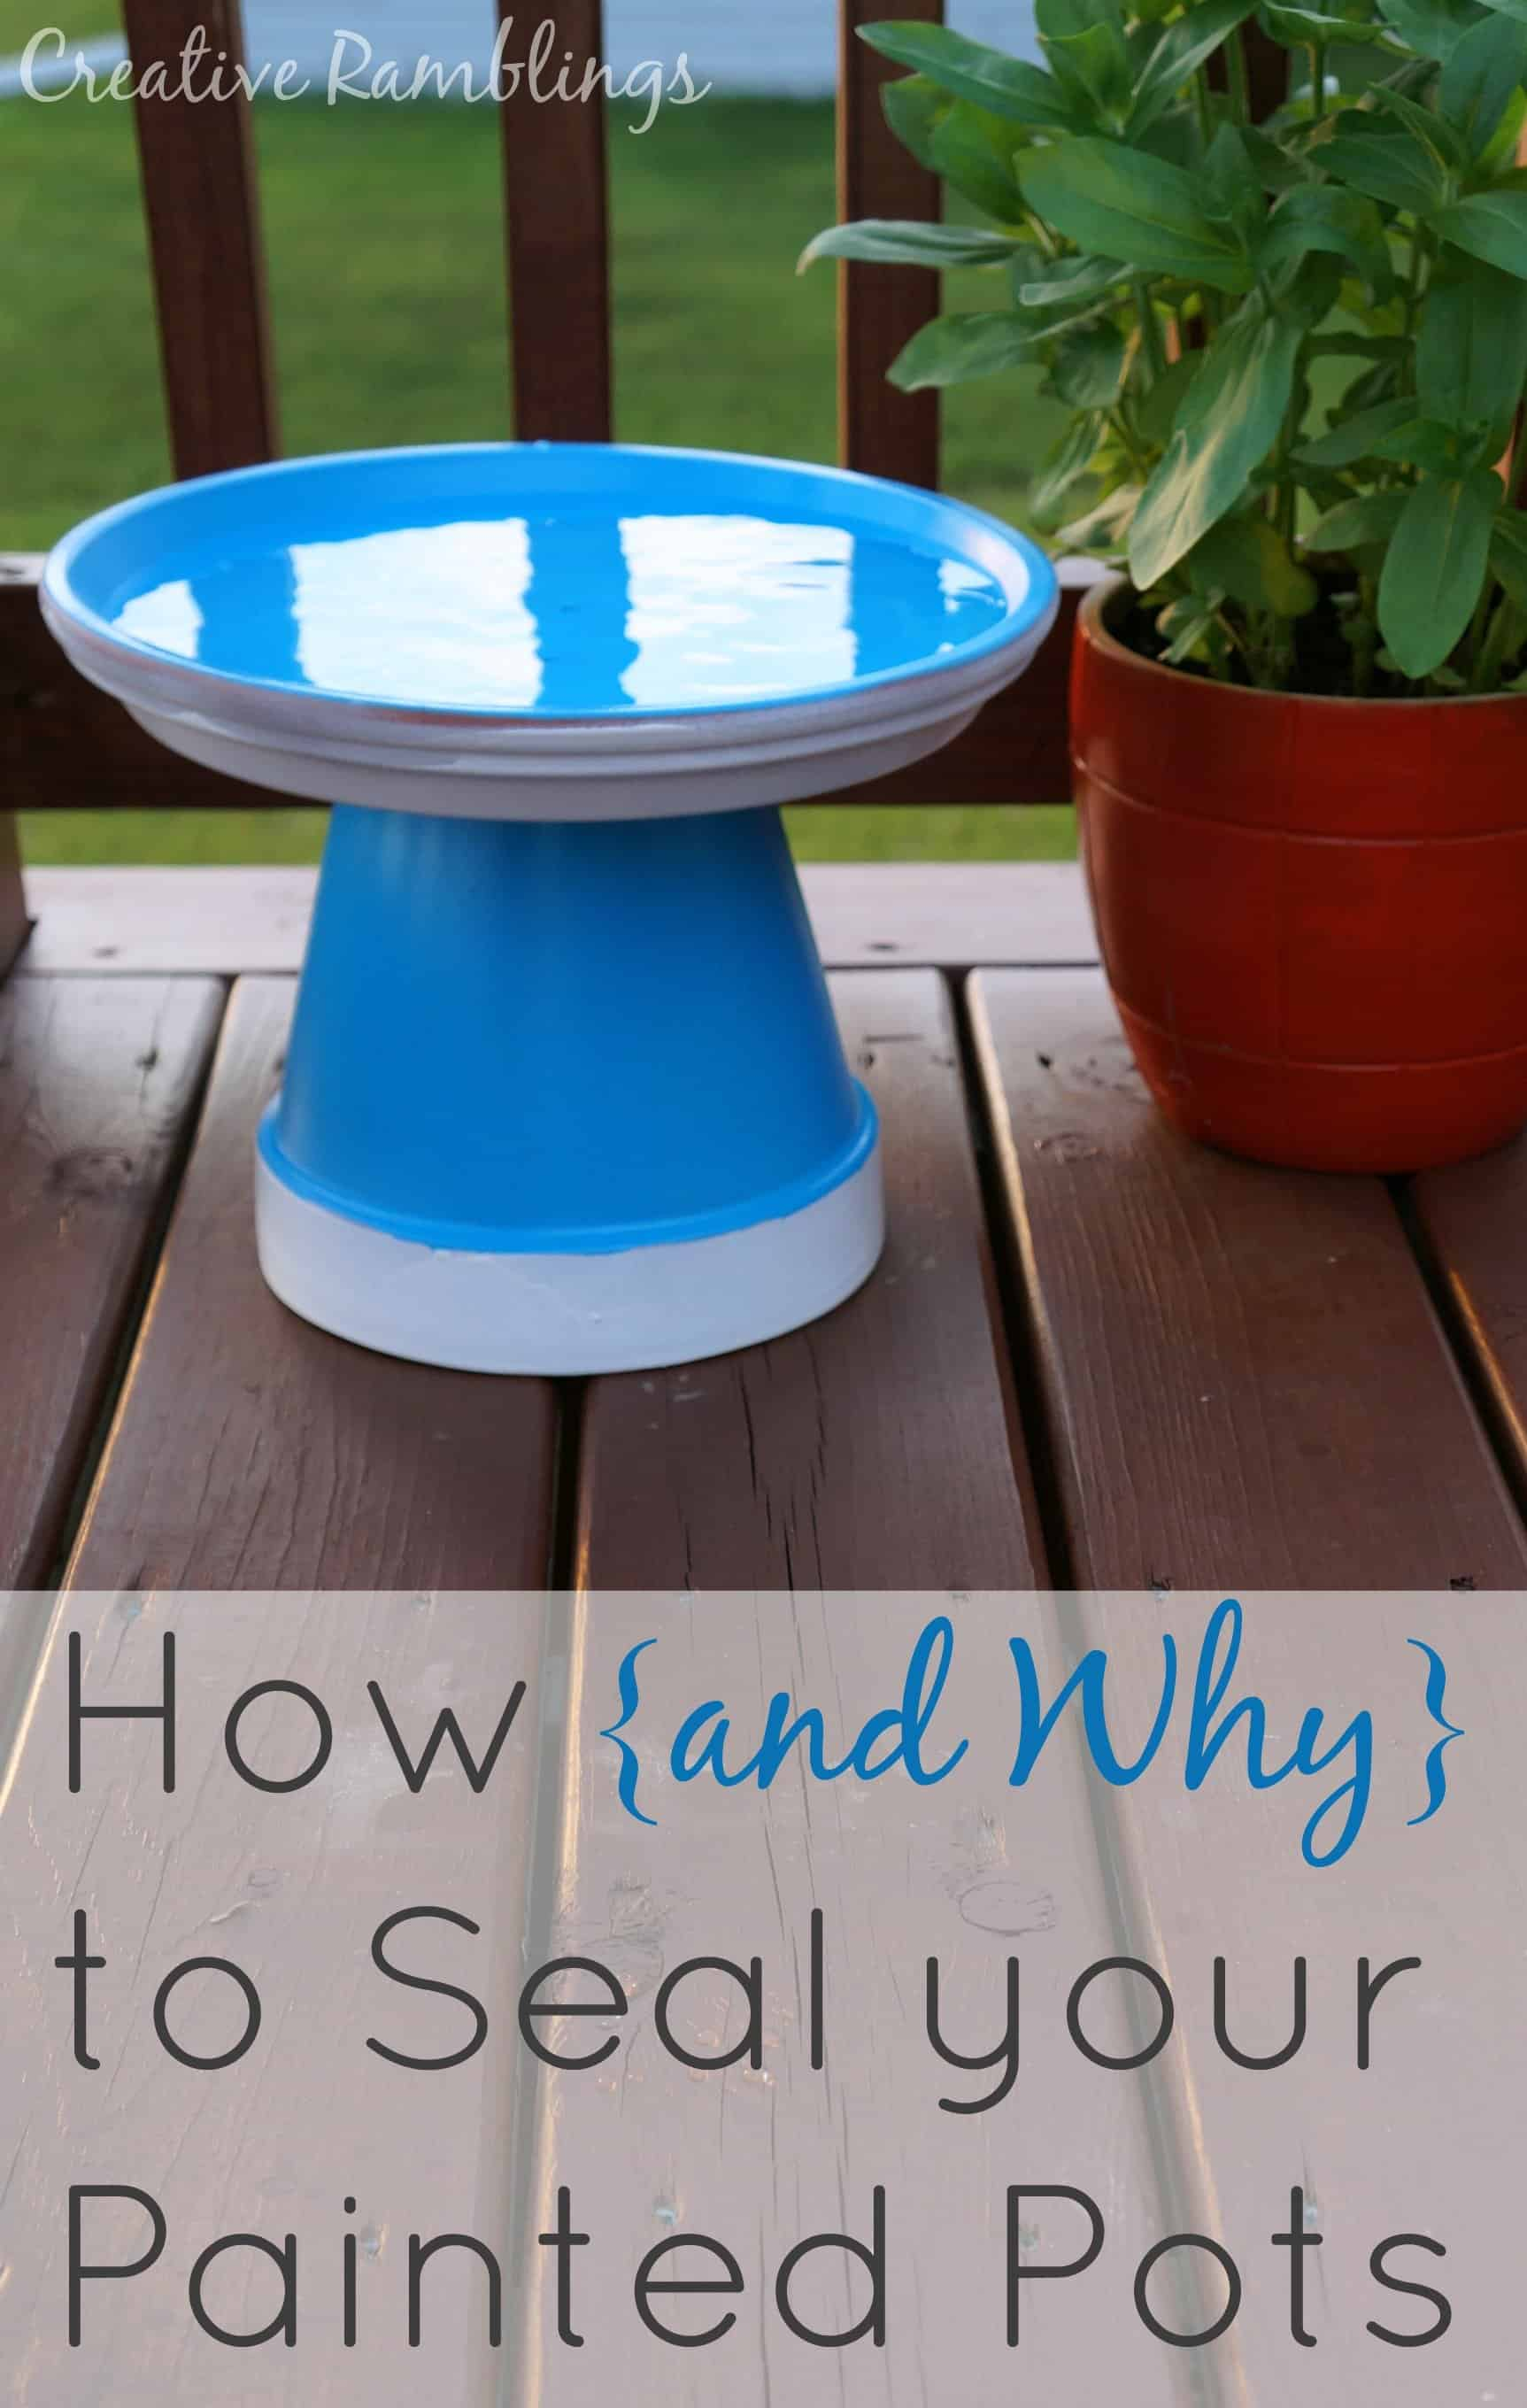 How And Why To Seal Painted Pots Plus A Mini Bird Bath